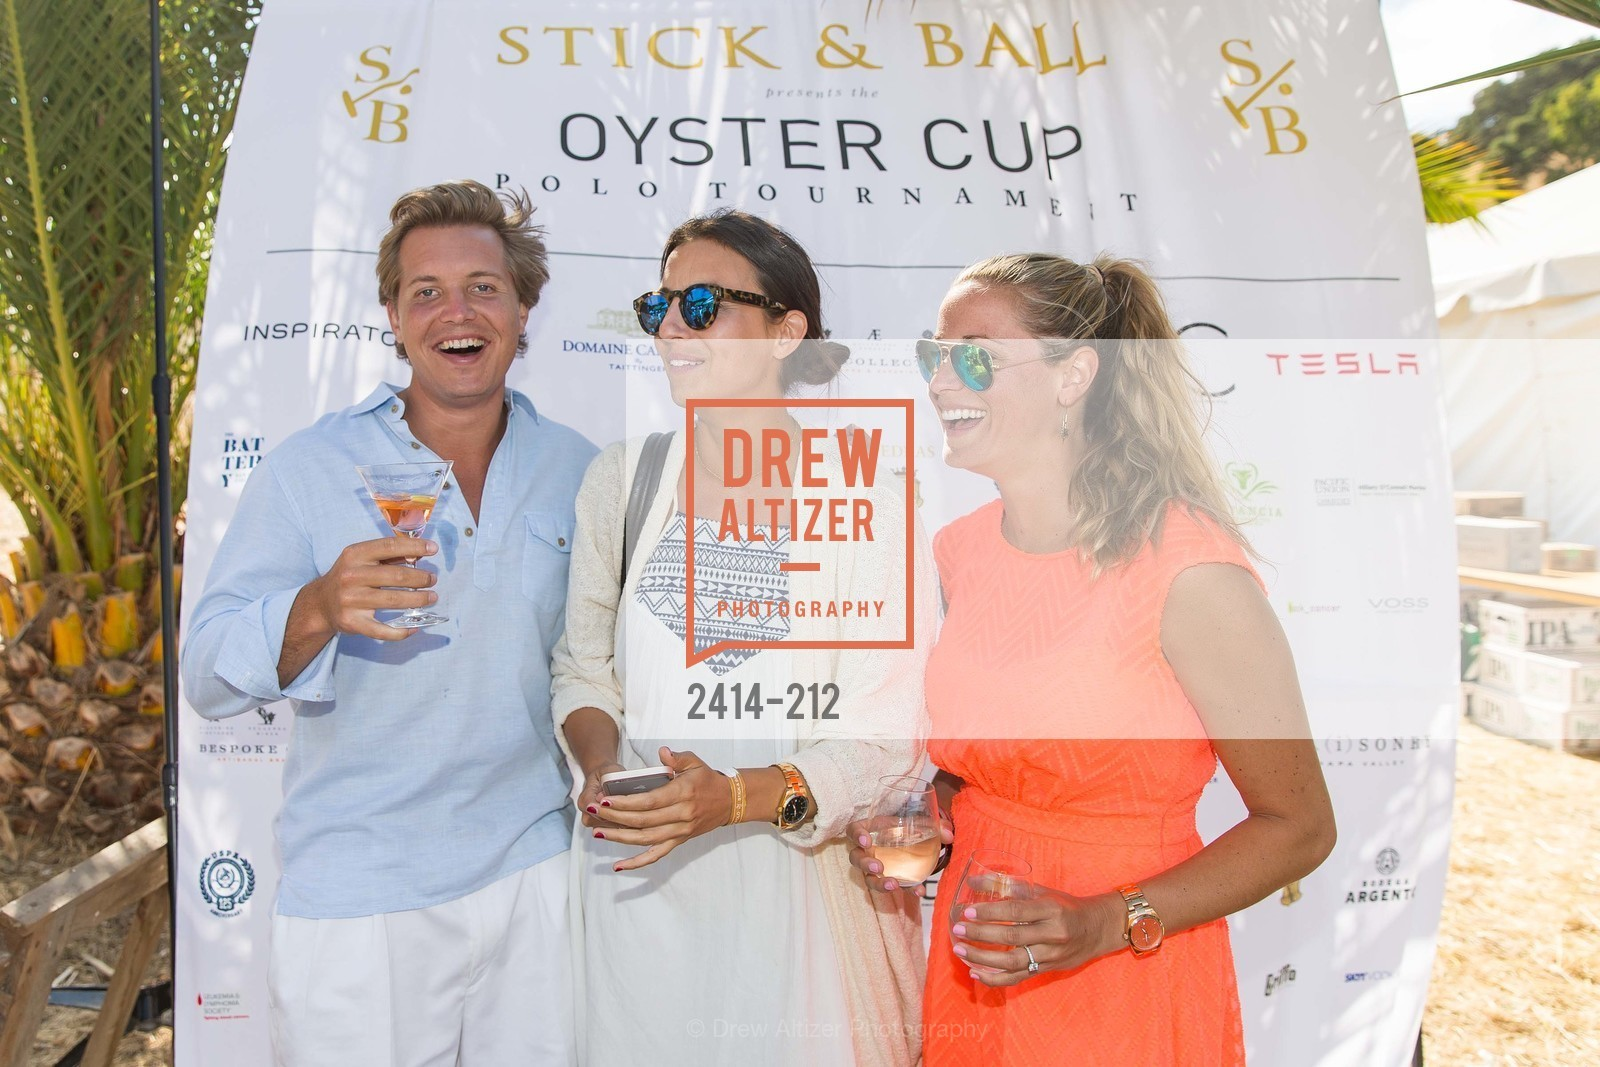 David McDonough, Reny Prusker, Katie Wolf, Stick & Ball Oyster Cup Polo Tournament, Cerro Pampa Polo Club, July 25th, 2015